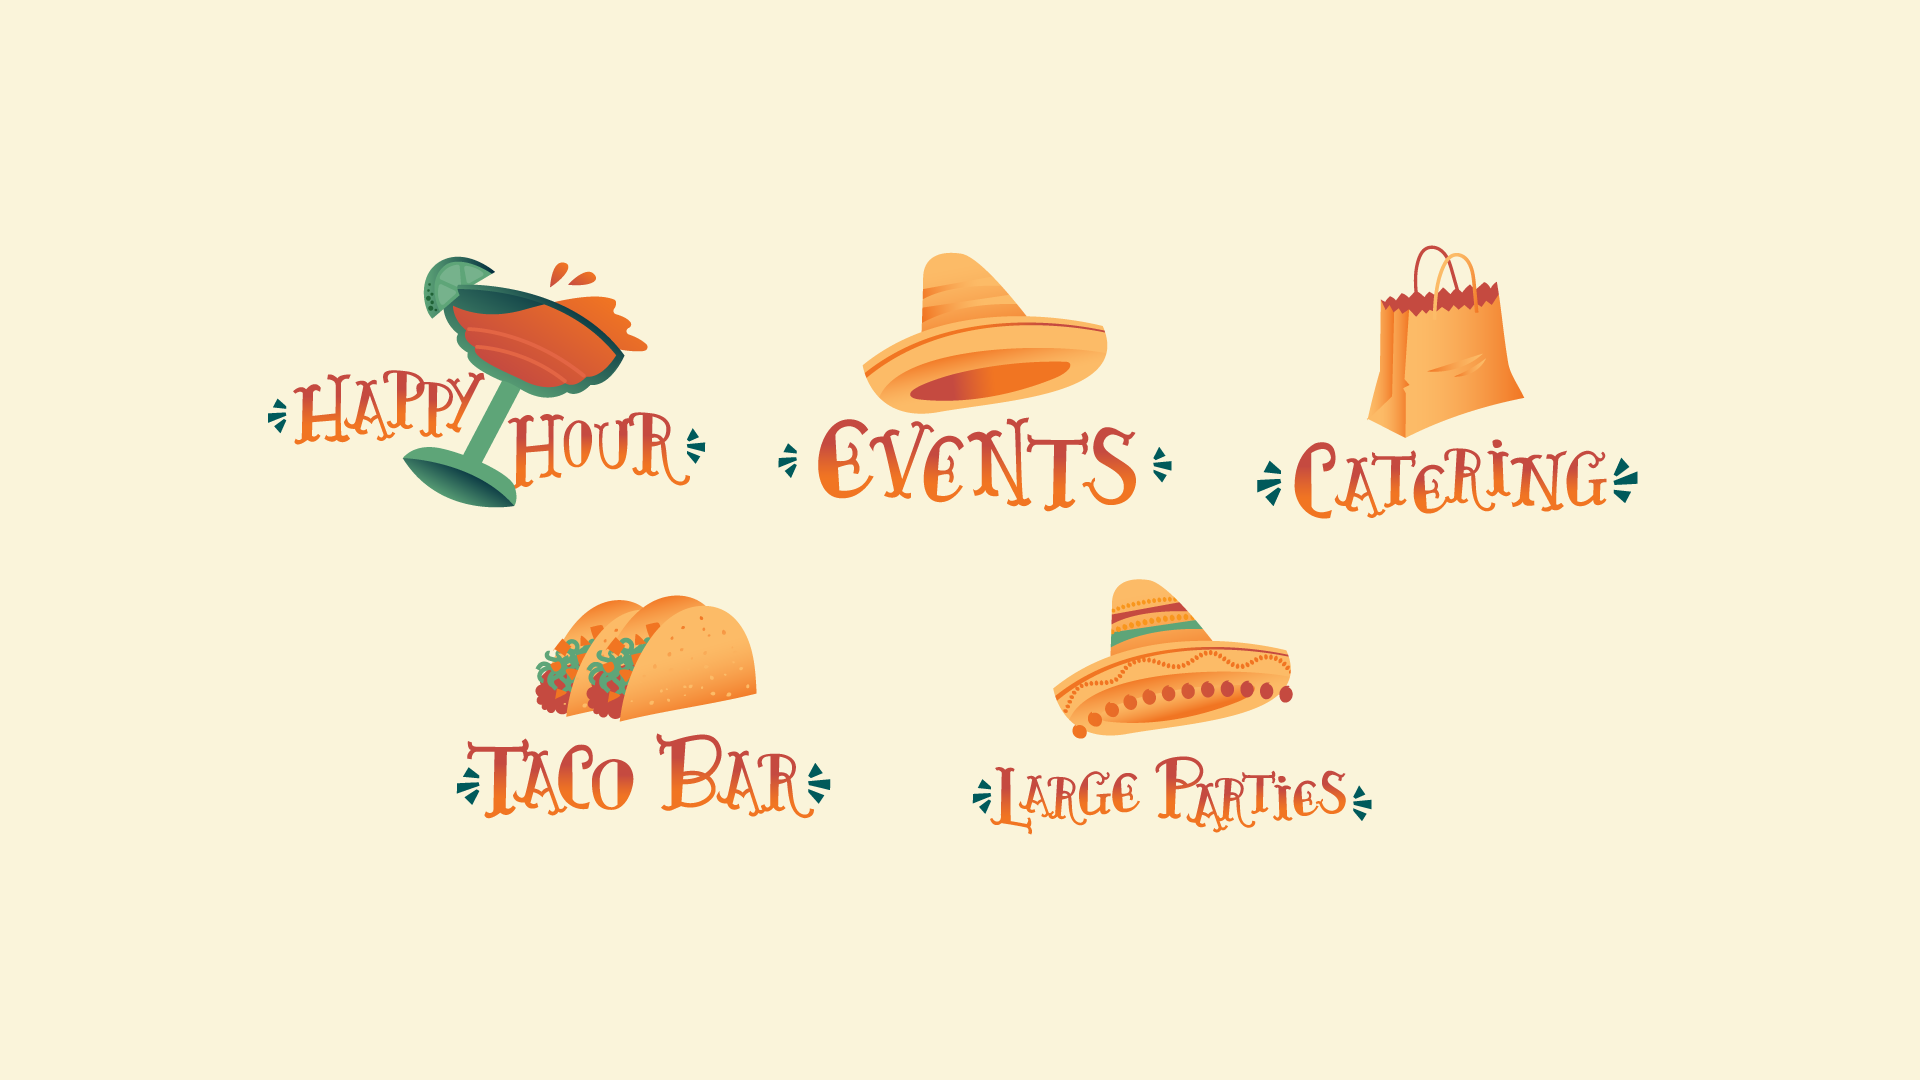 Icon Design - We also created a series of custom-illustrated icons for use on the menu and website.